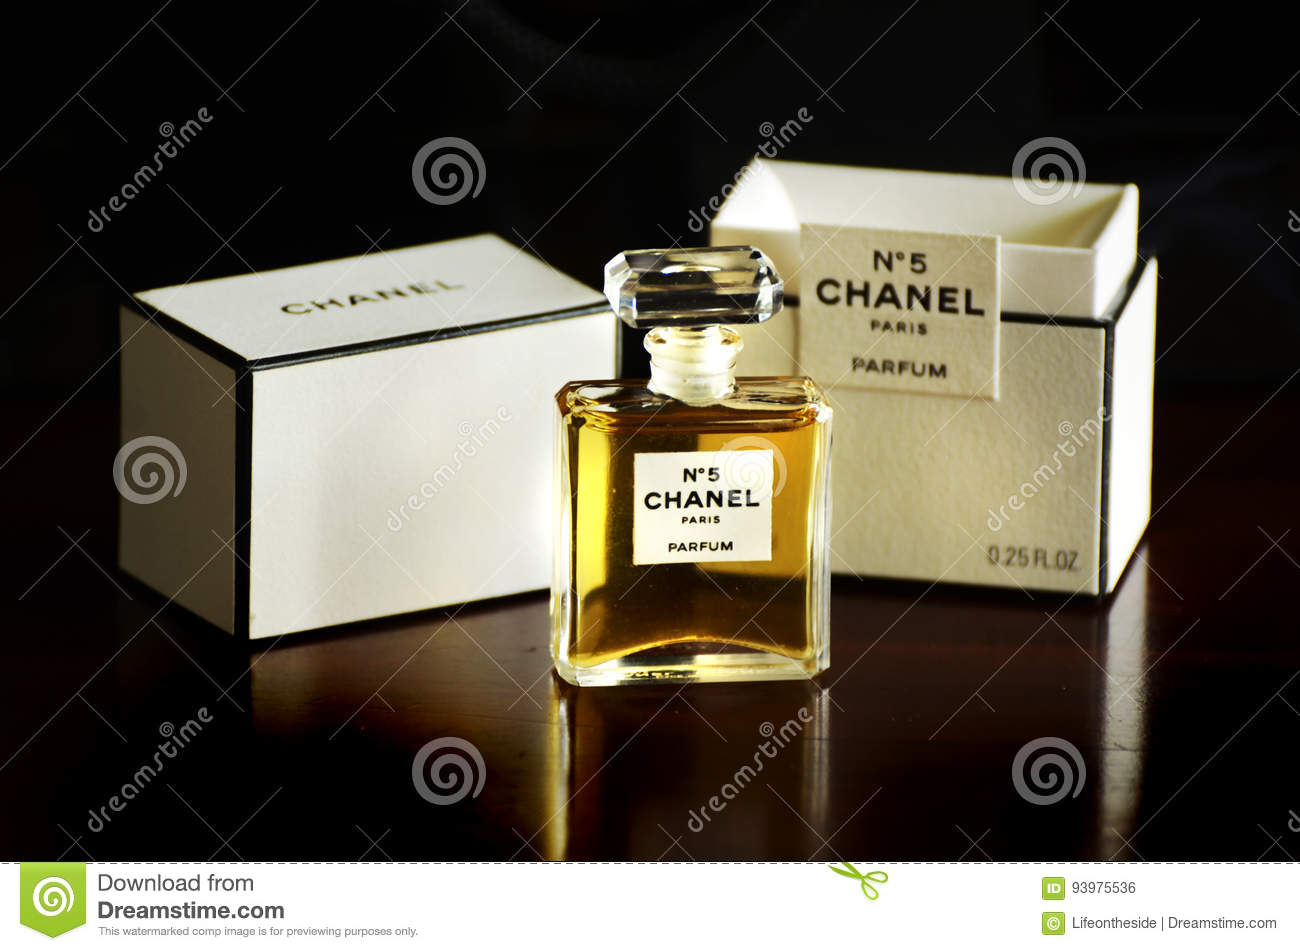 Chanel No 5 French Perfume Parfum Bottle Box Isolated Dark